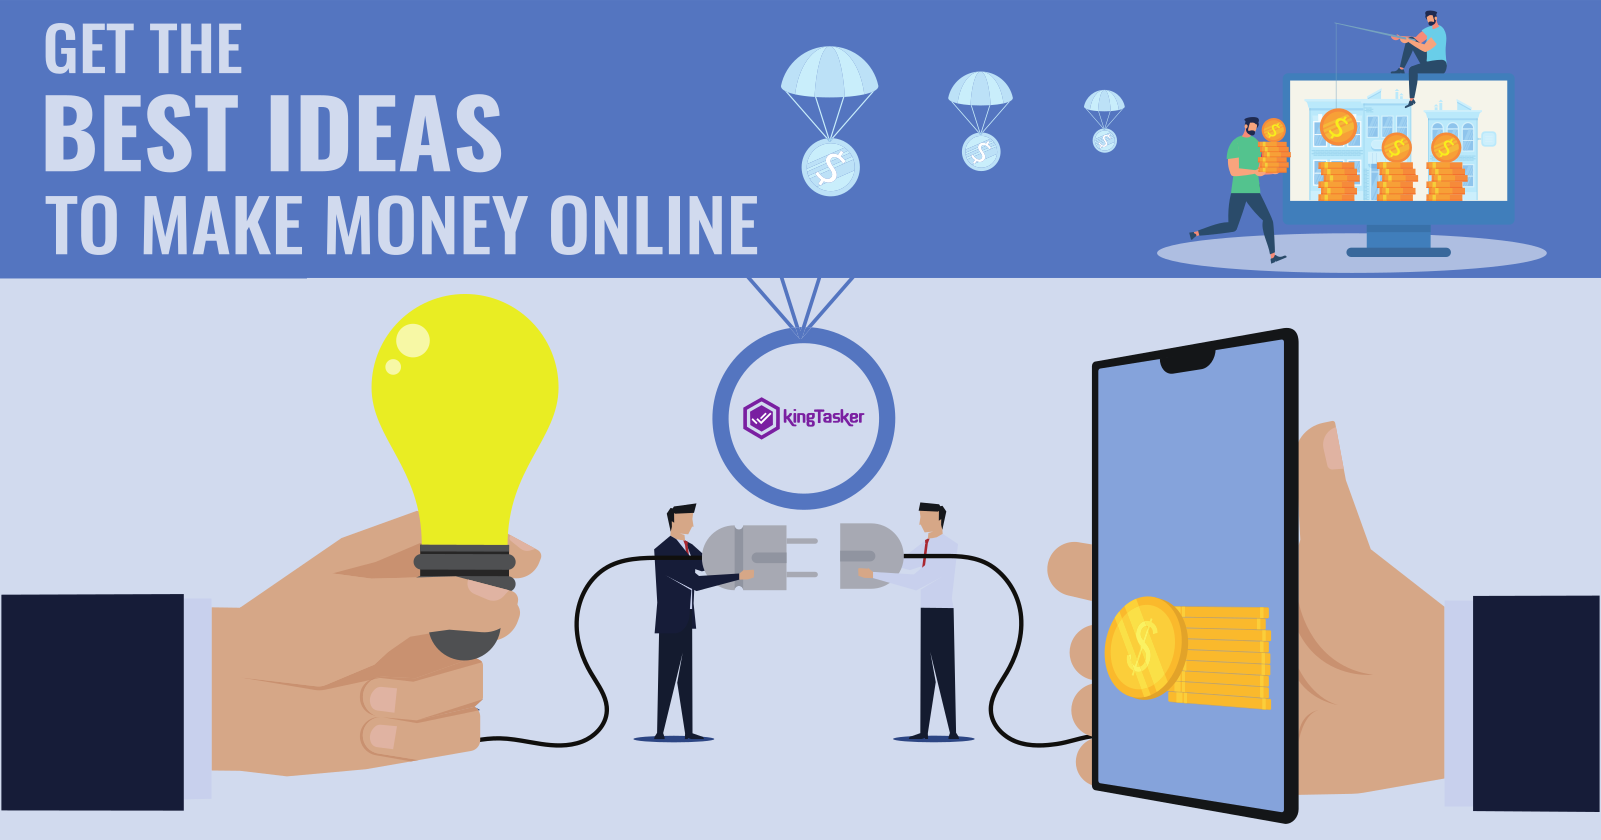 Get the Best Ideas to Make Money Online